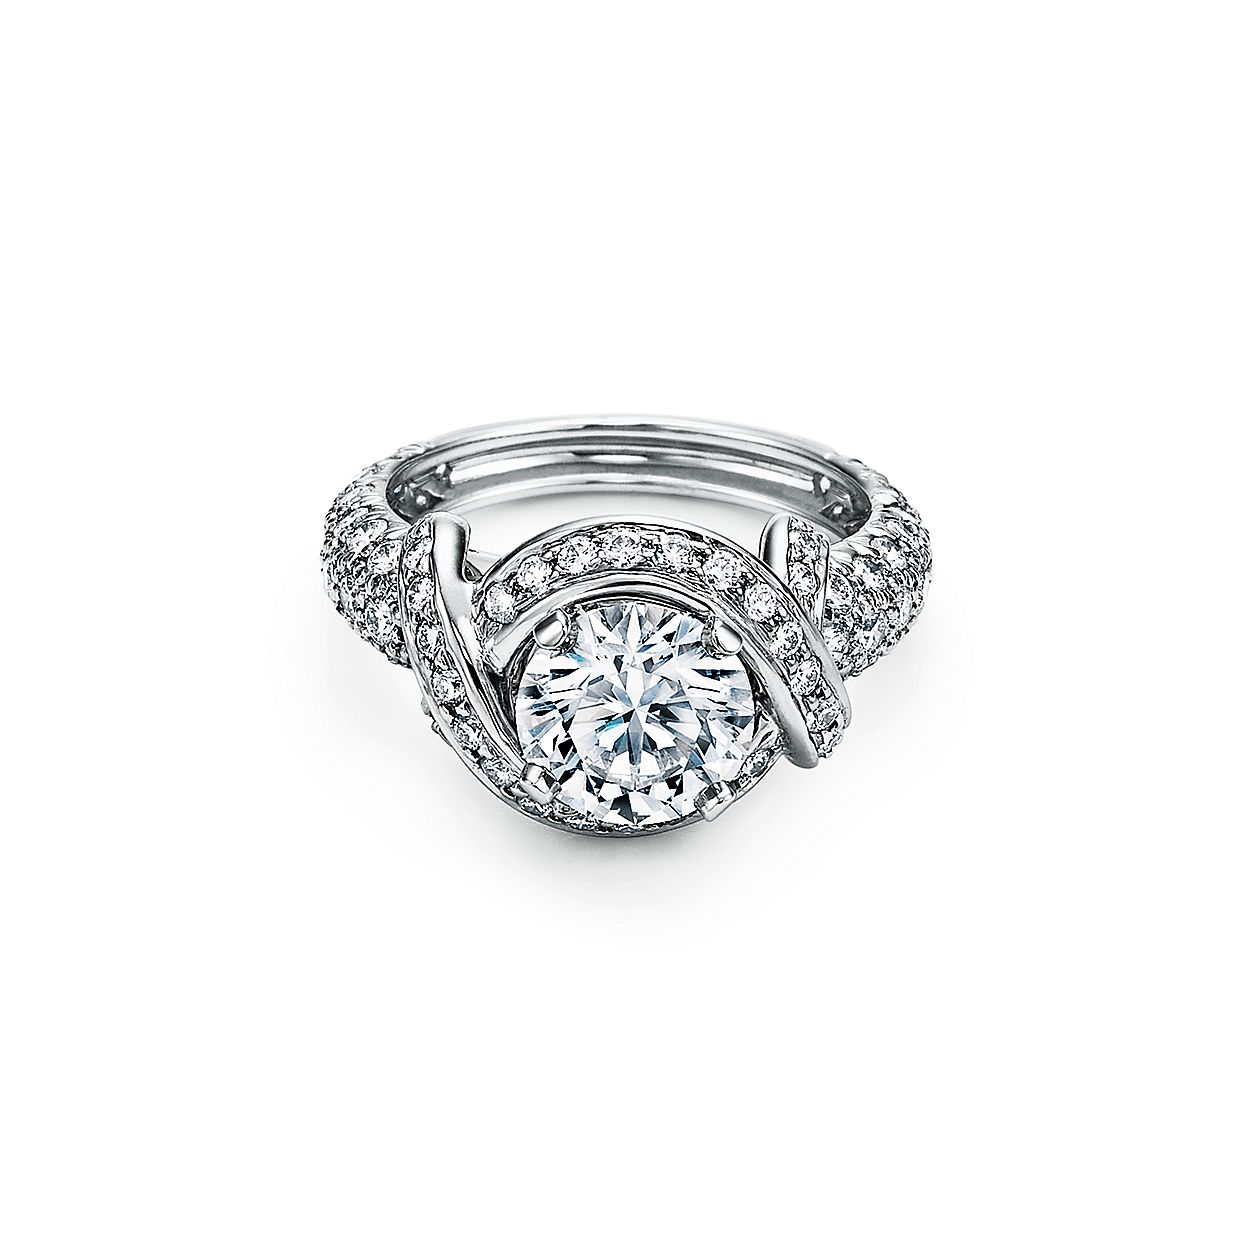 9546d19f6 tiffany-co-schlumberger-round-brilliant-engagement-ring-with-a-diamond -platinum-band-22597361_995903_ED_M.jpg?&op_usm=1.75,1.0,6.0&$cropN=<MediaCrop>&  ...